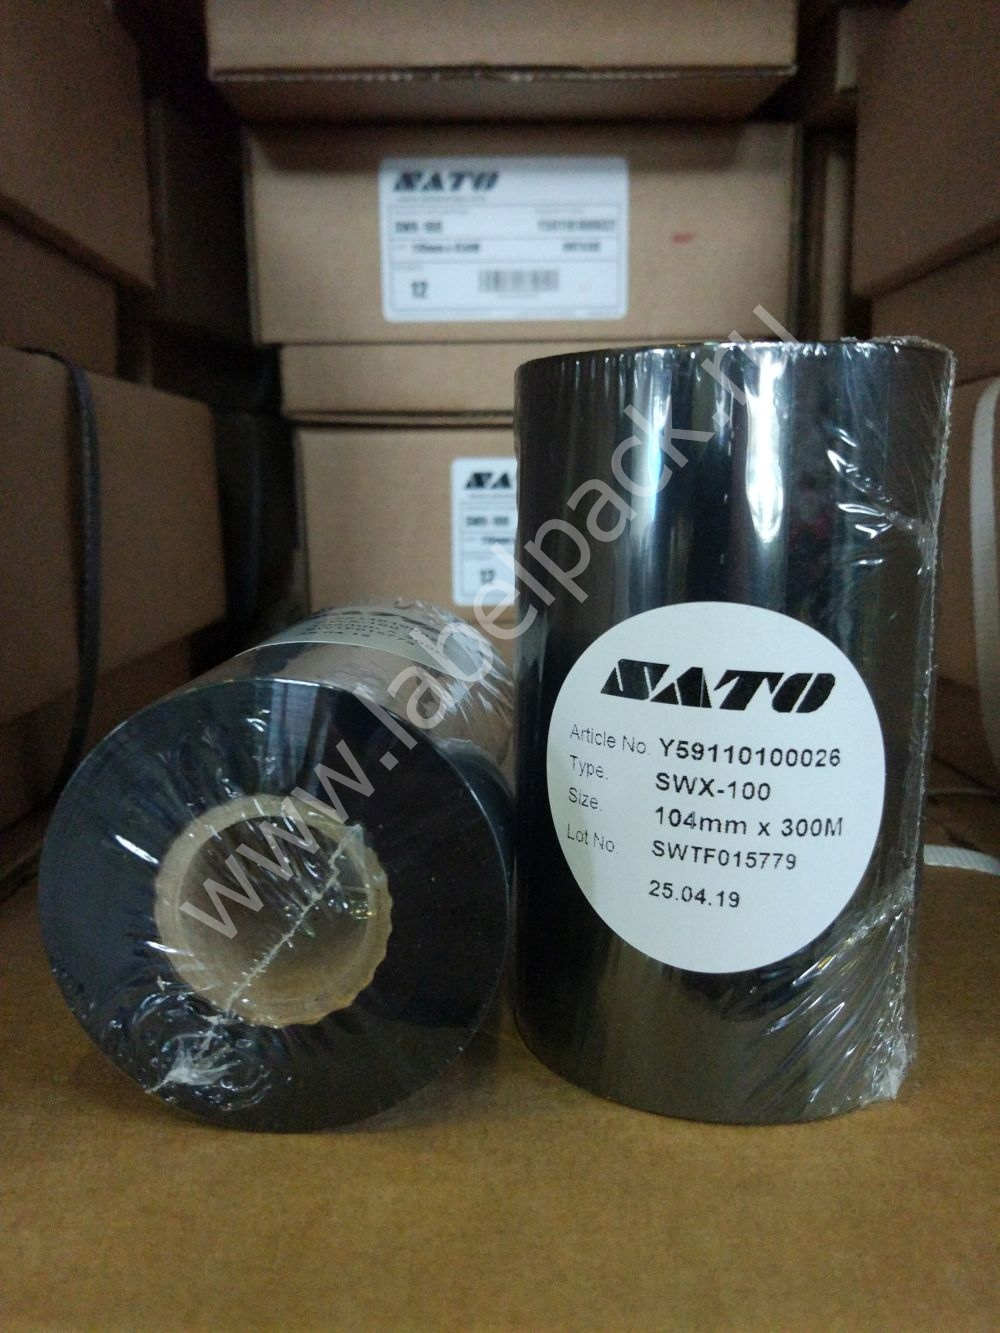 Y59110100026 1 - Риббон - SATO SWX100 WAX 104 x 300 IN